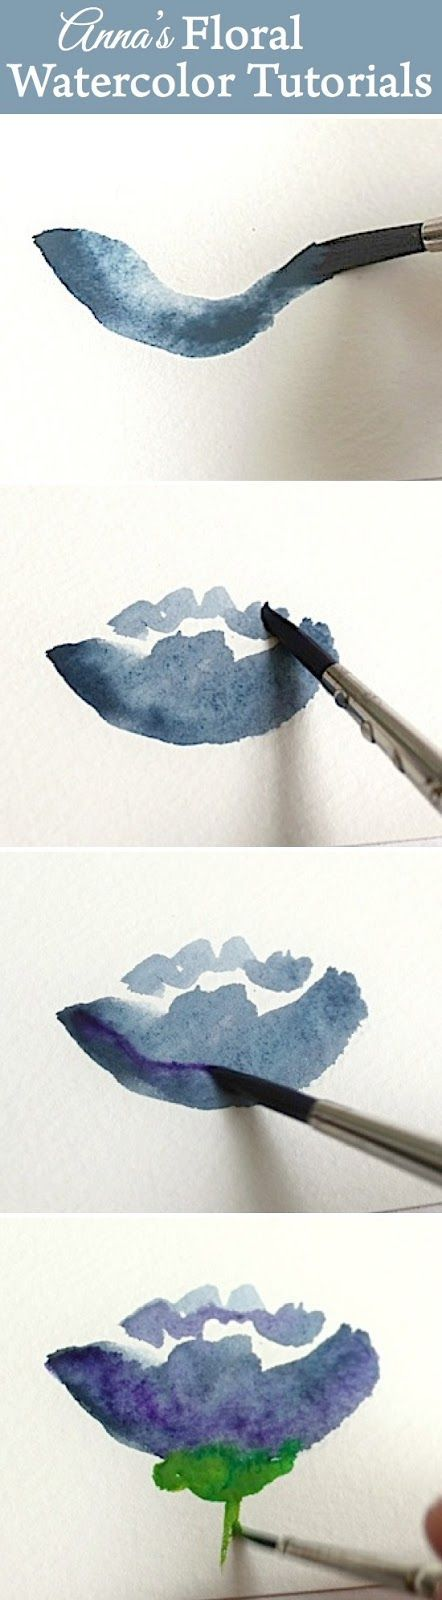 Floral Watercolor Tutorials | Crafts and DIY Community